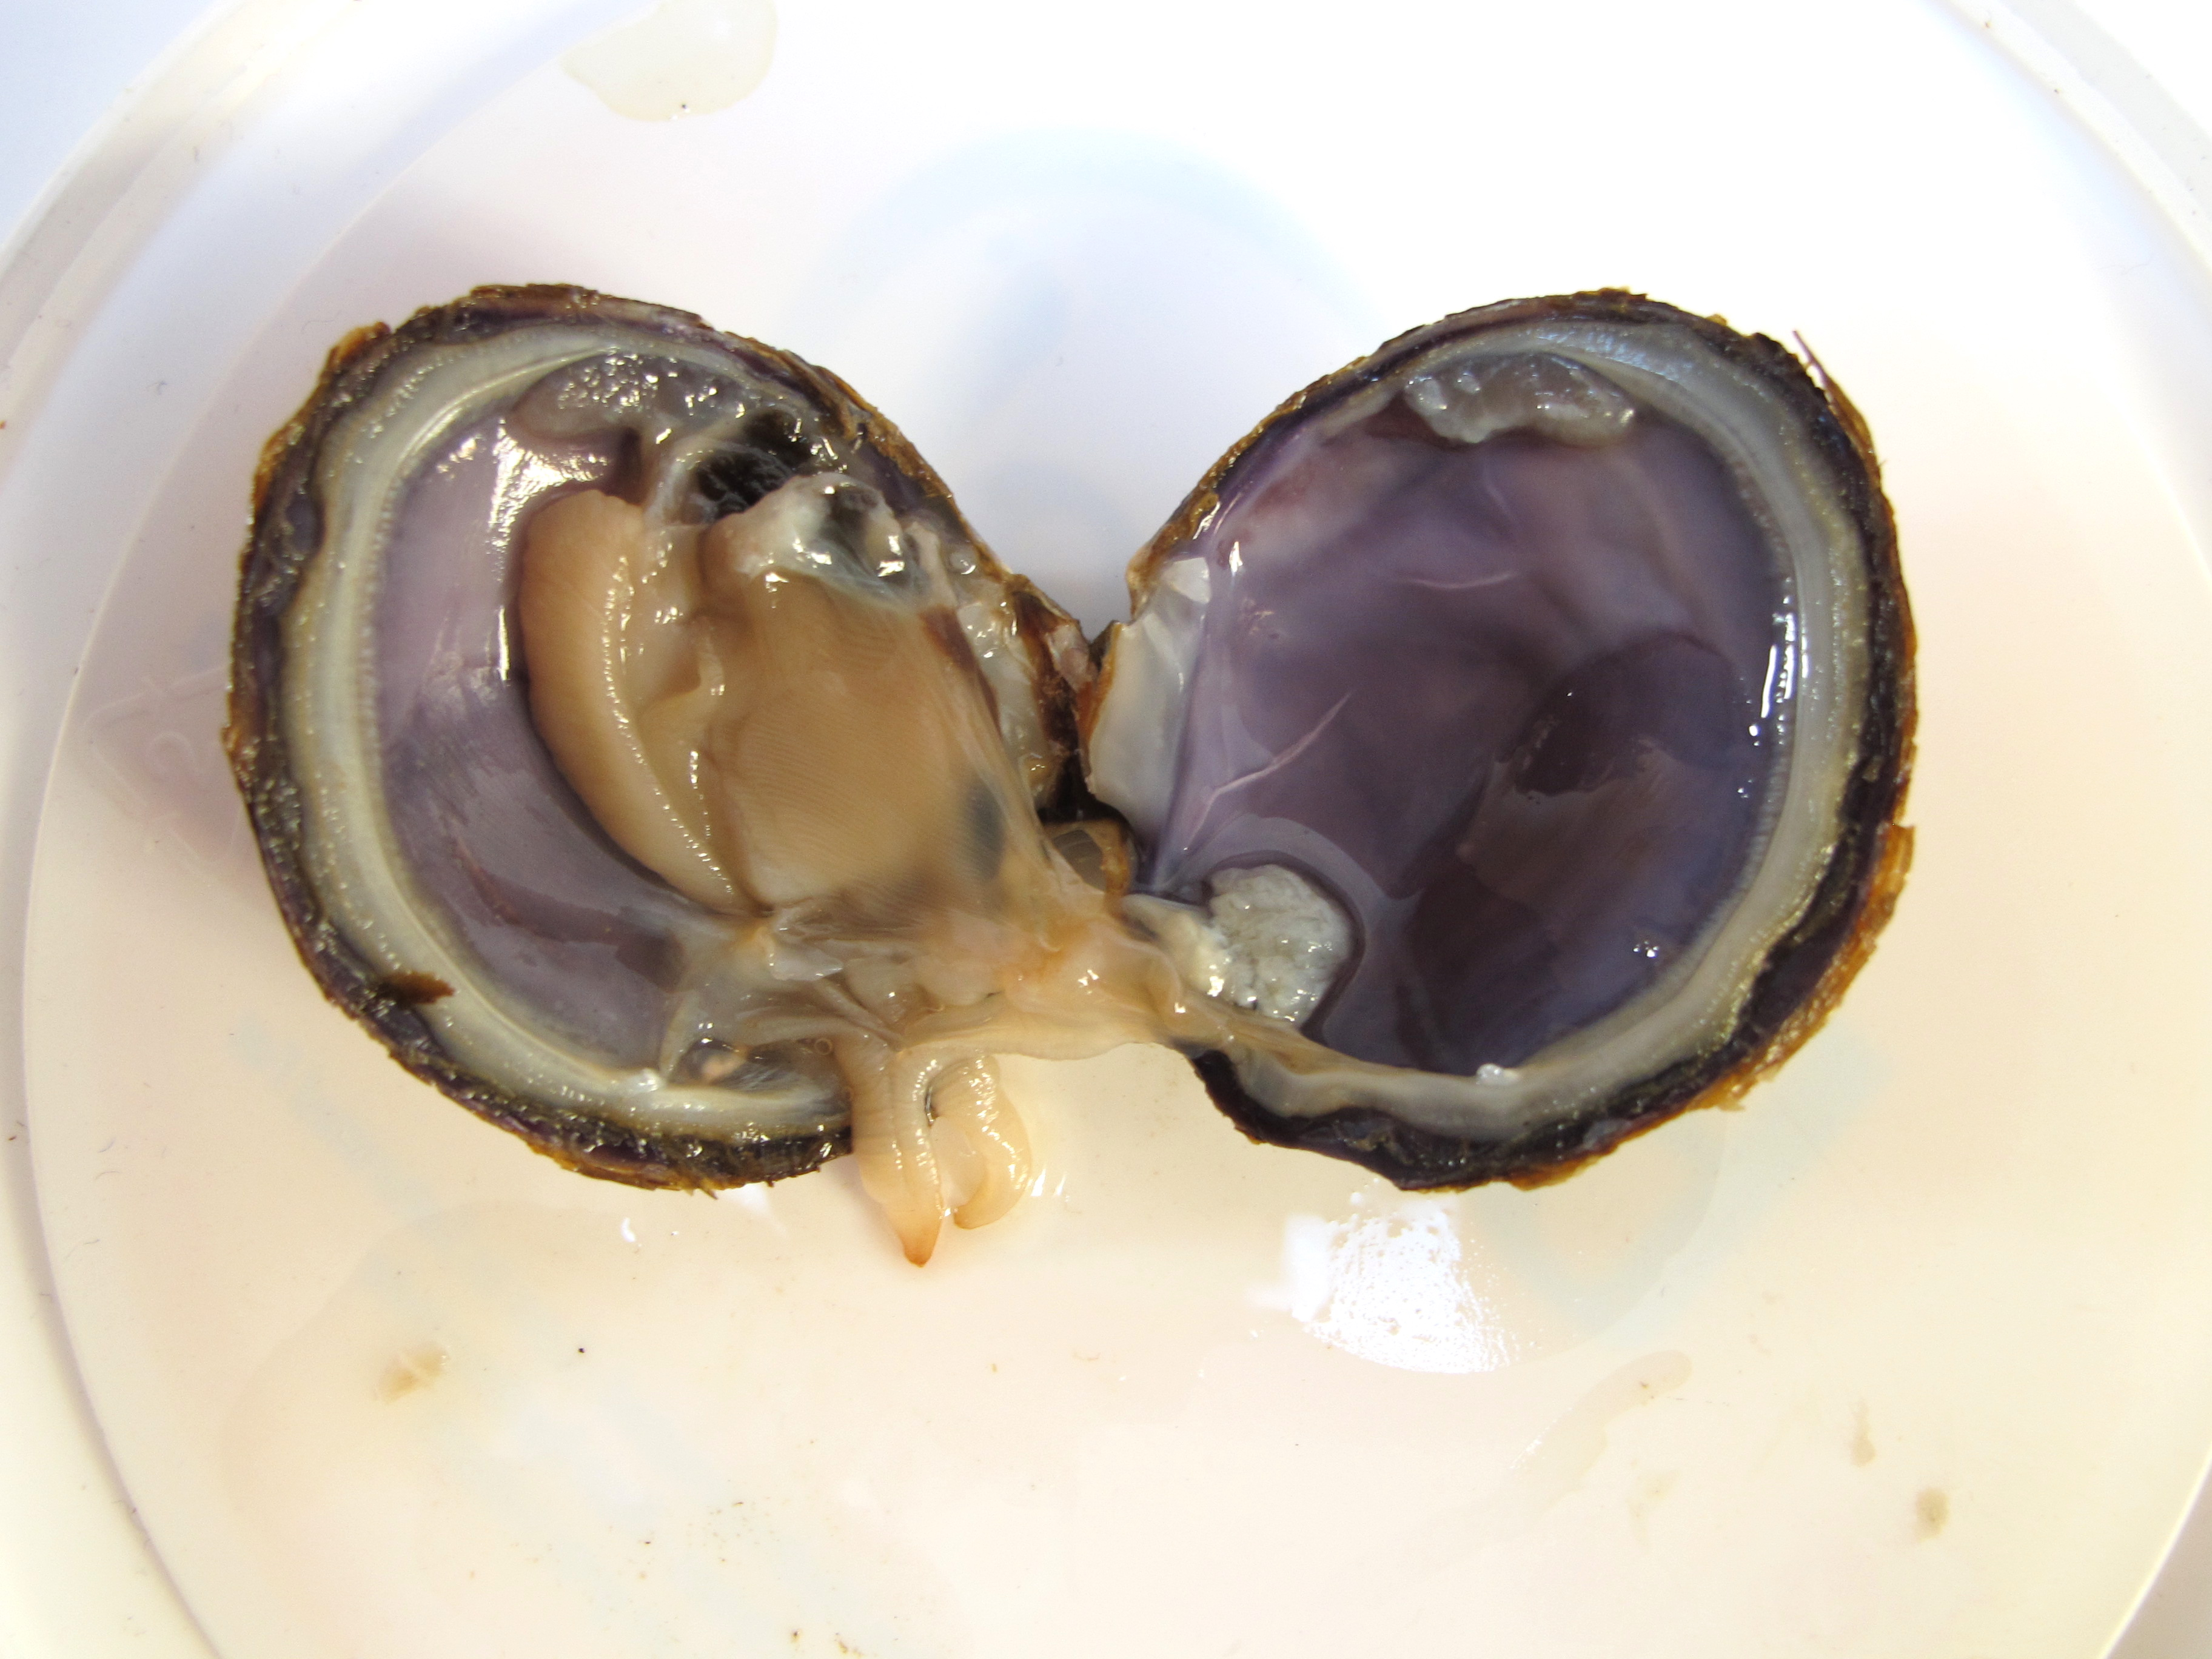 Clam dissection (or mussel) | ingridscience.ca